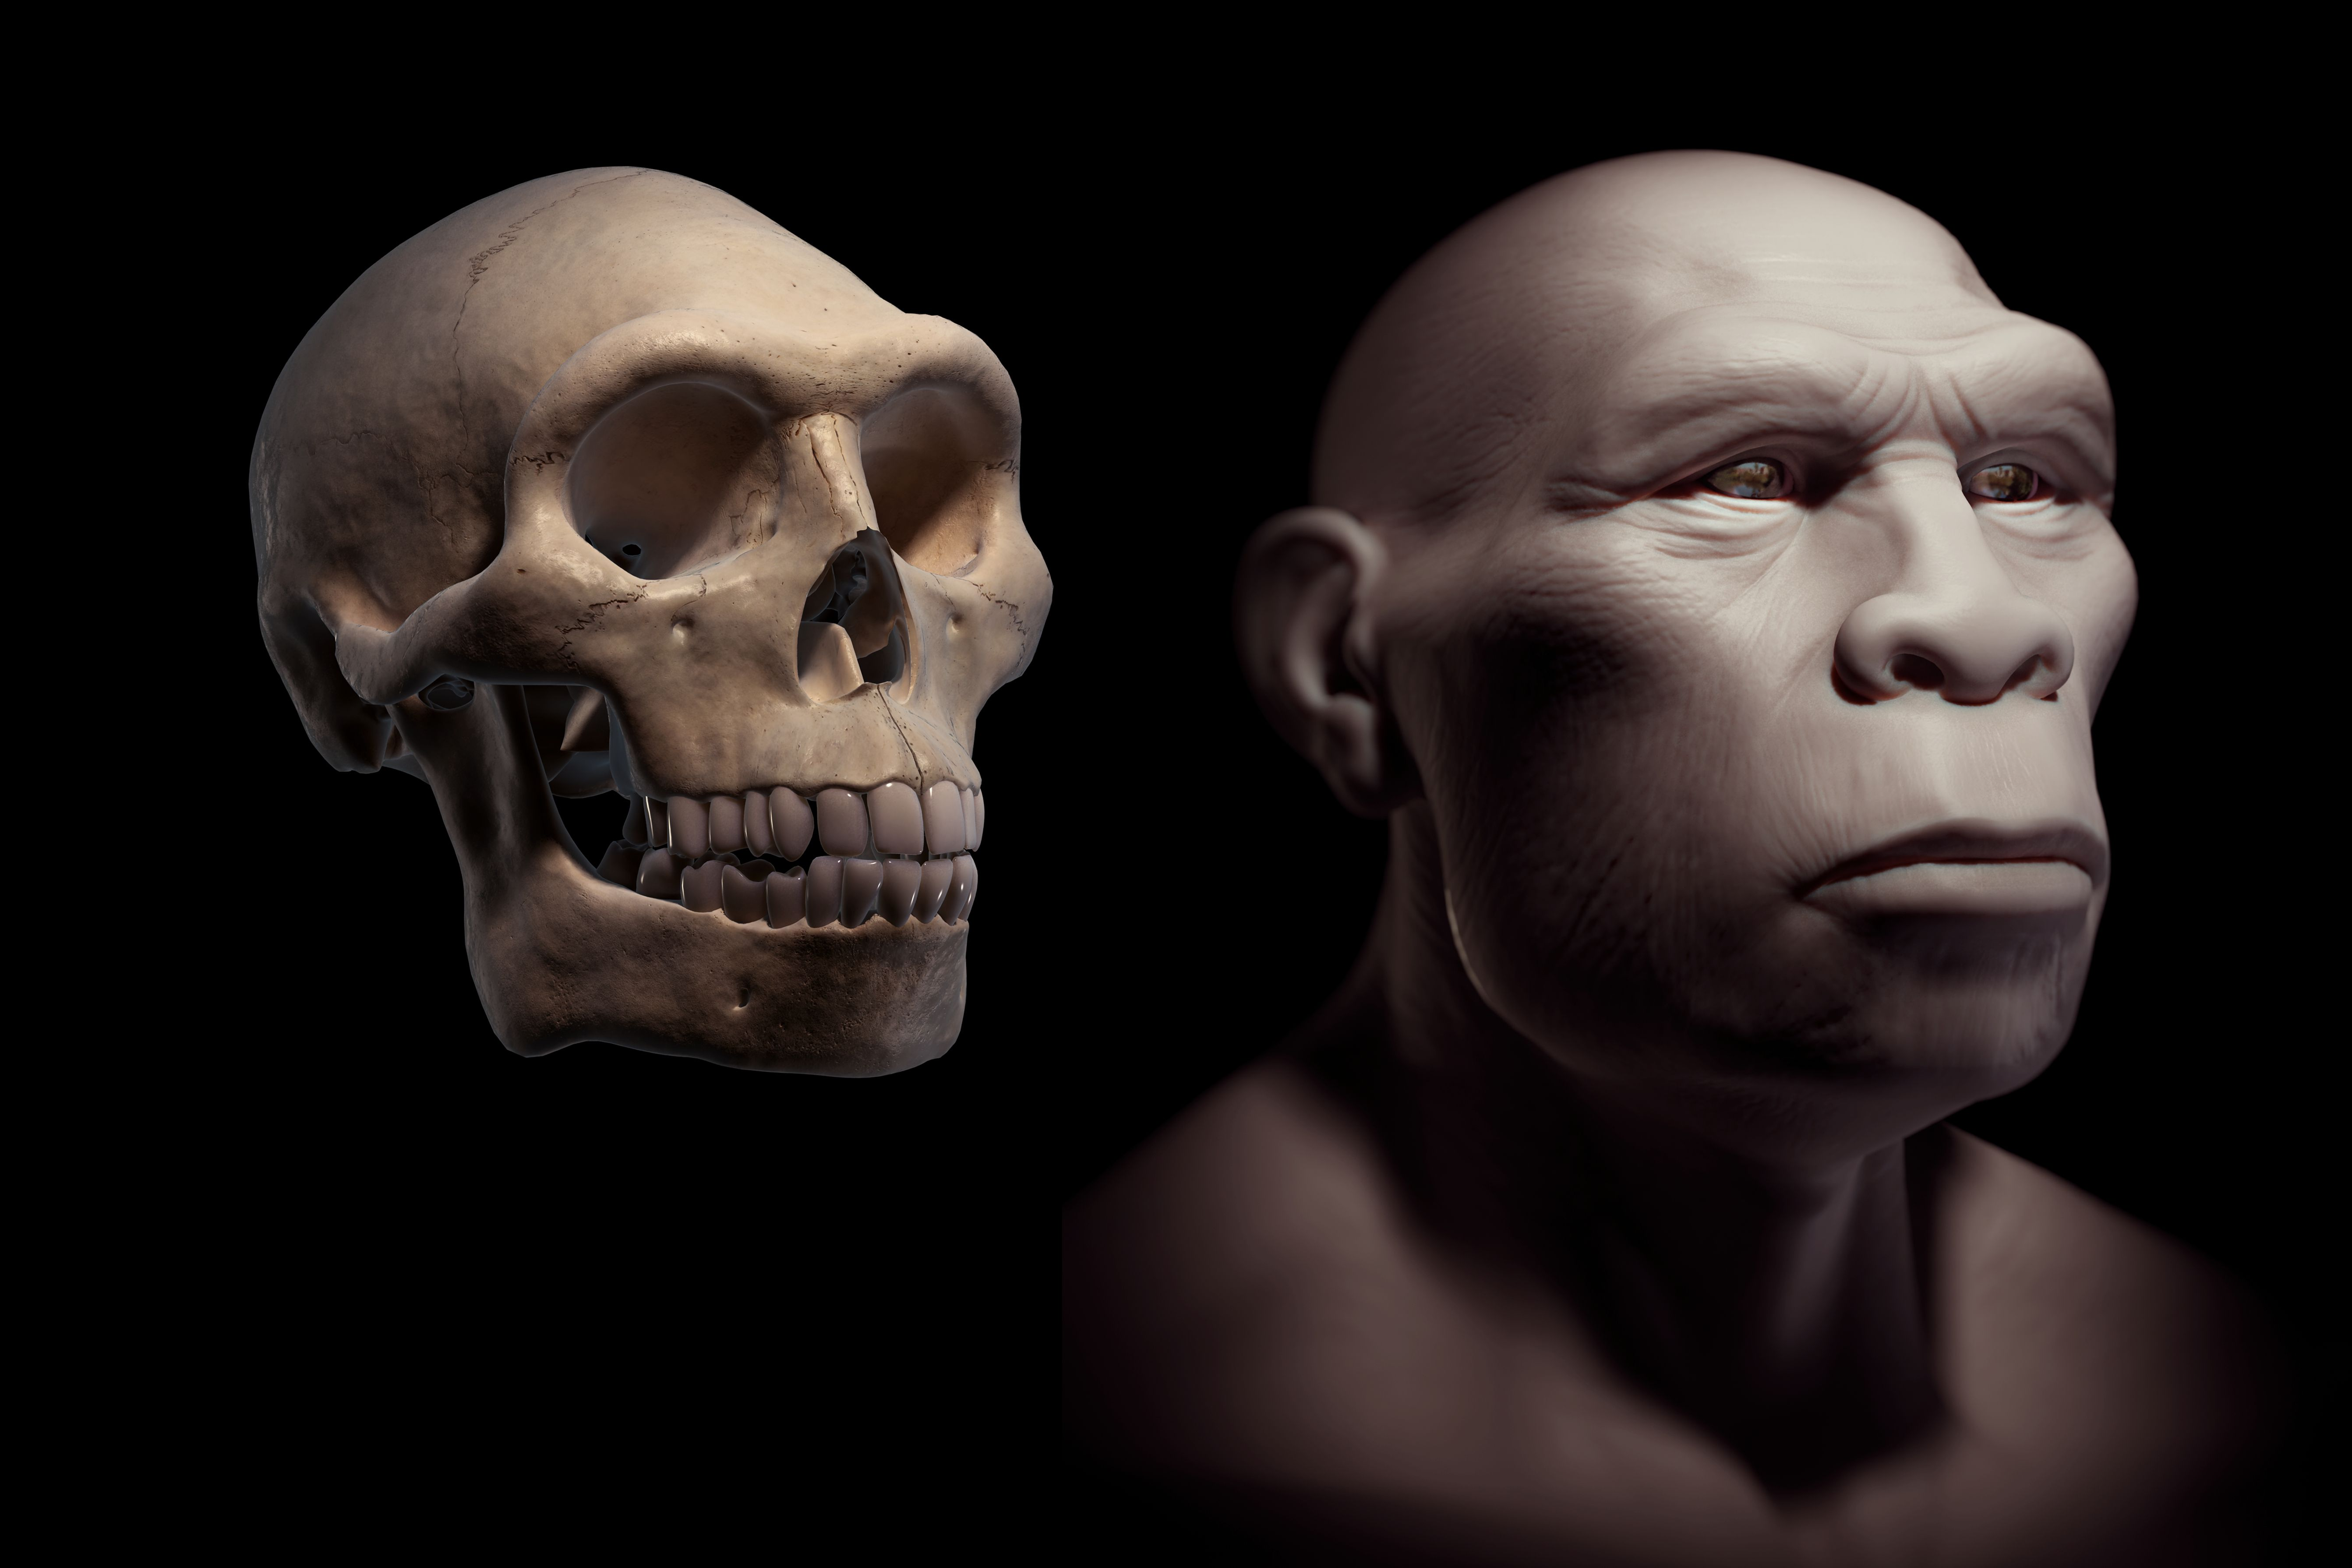 changes from the paleolithic to the The paleolithic era accounts for millions of years of human experience, a period many times longer than the mere ten thousand years that something resembling civilization can be said to have existed this first primitive era saw few changes in how humans lived.